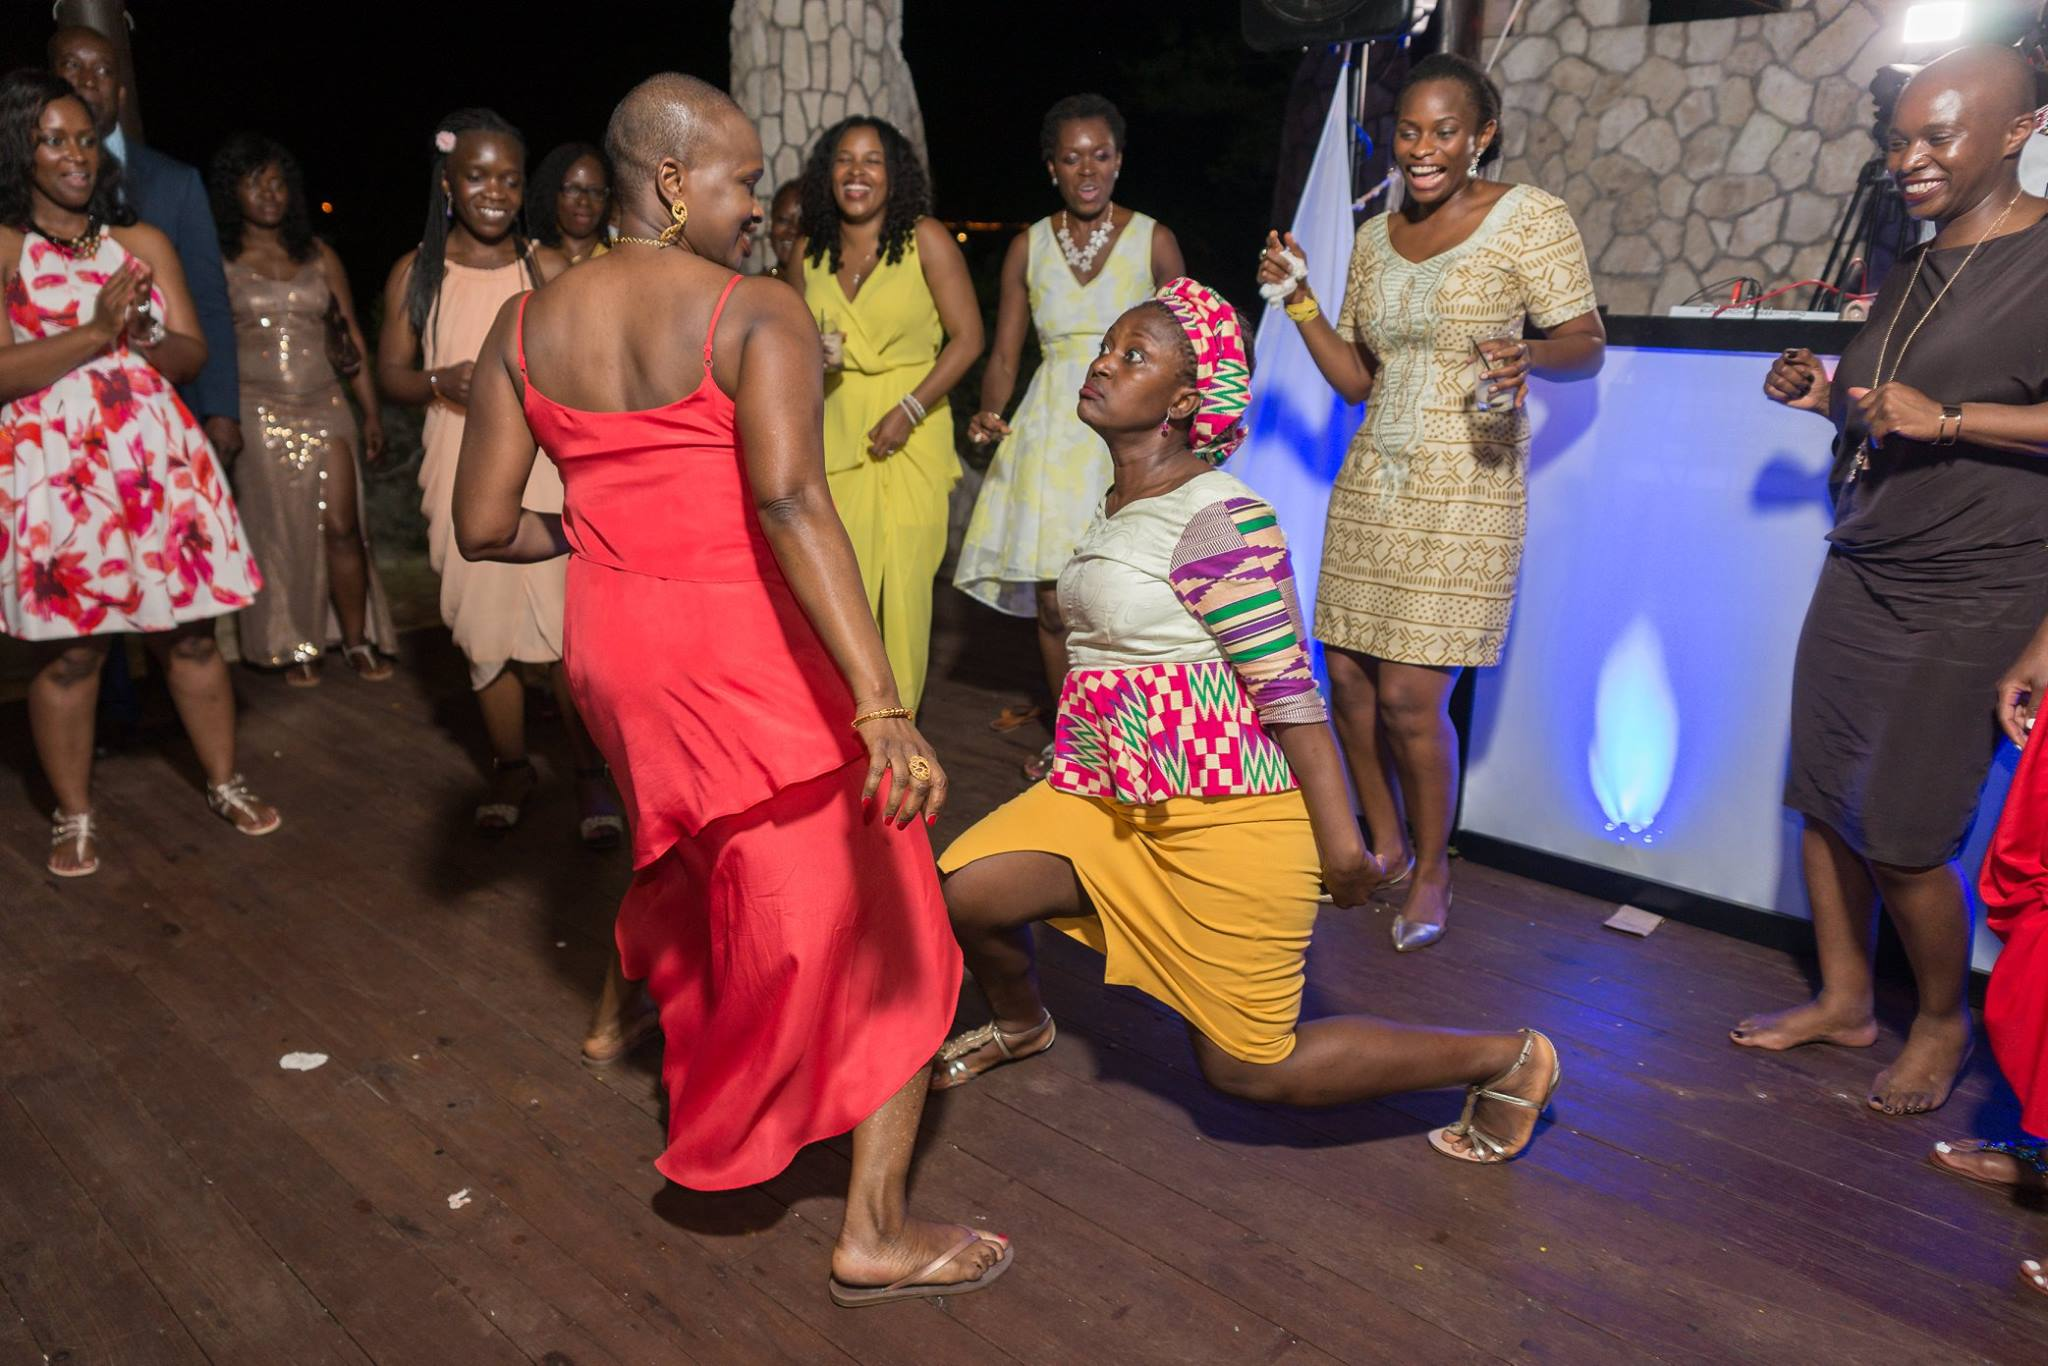 Denise Mason Photography at Rock House Hotel West End Negril Jamaica